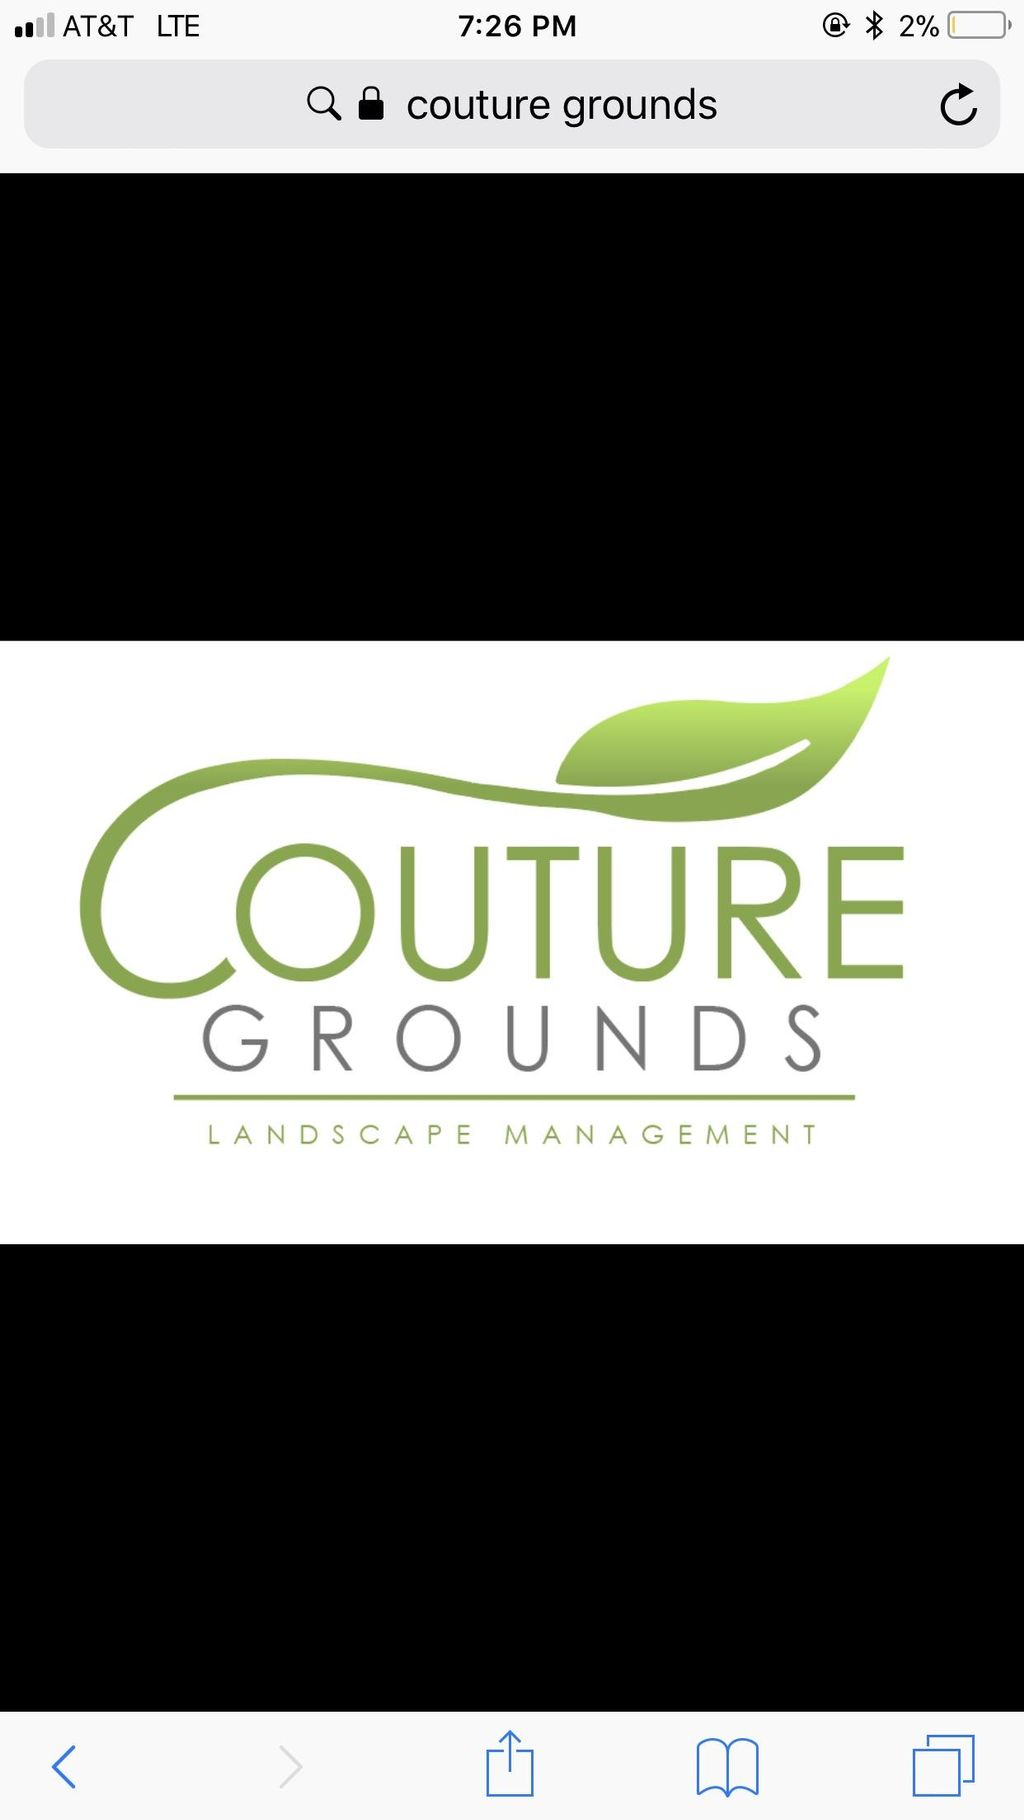 Couture Grounds